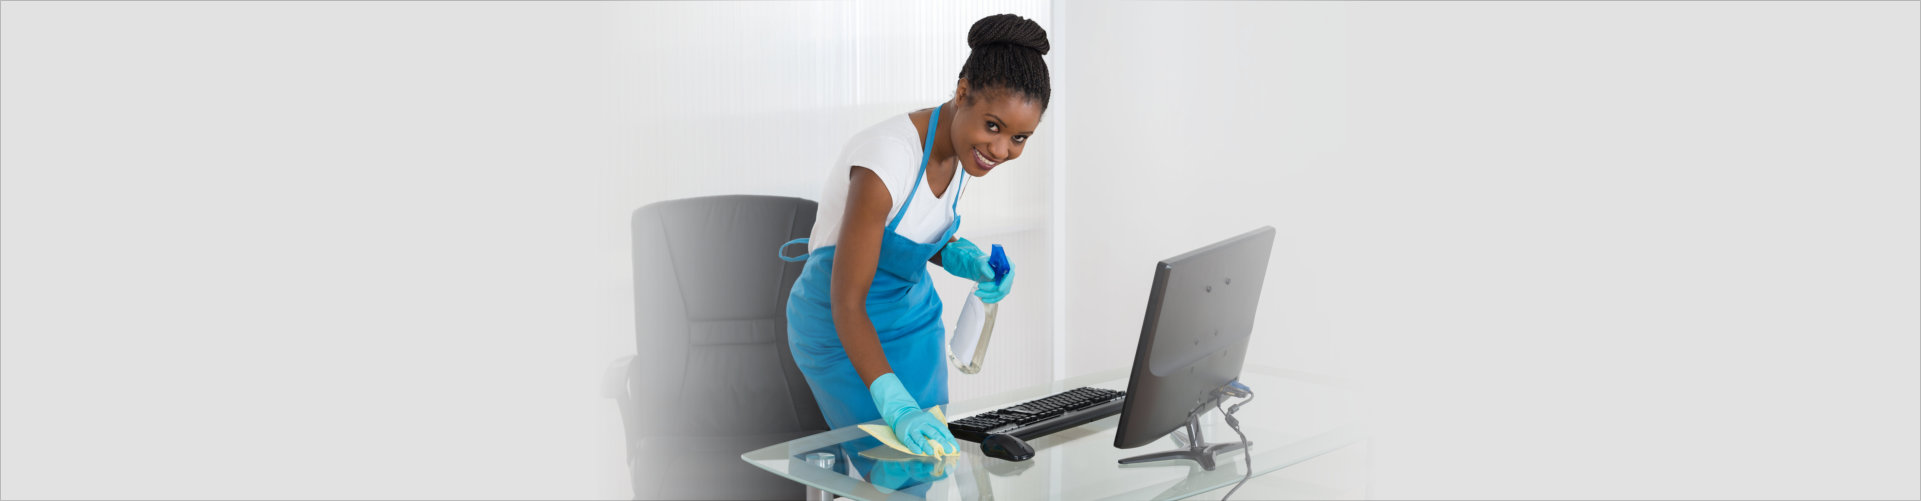 Woman cleaning using napkin and spray